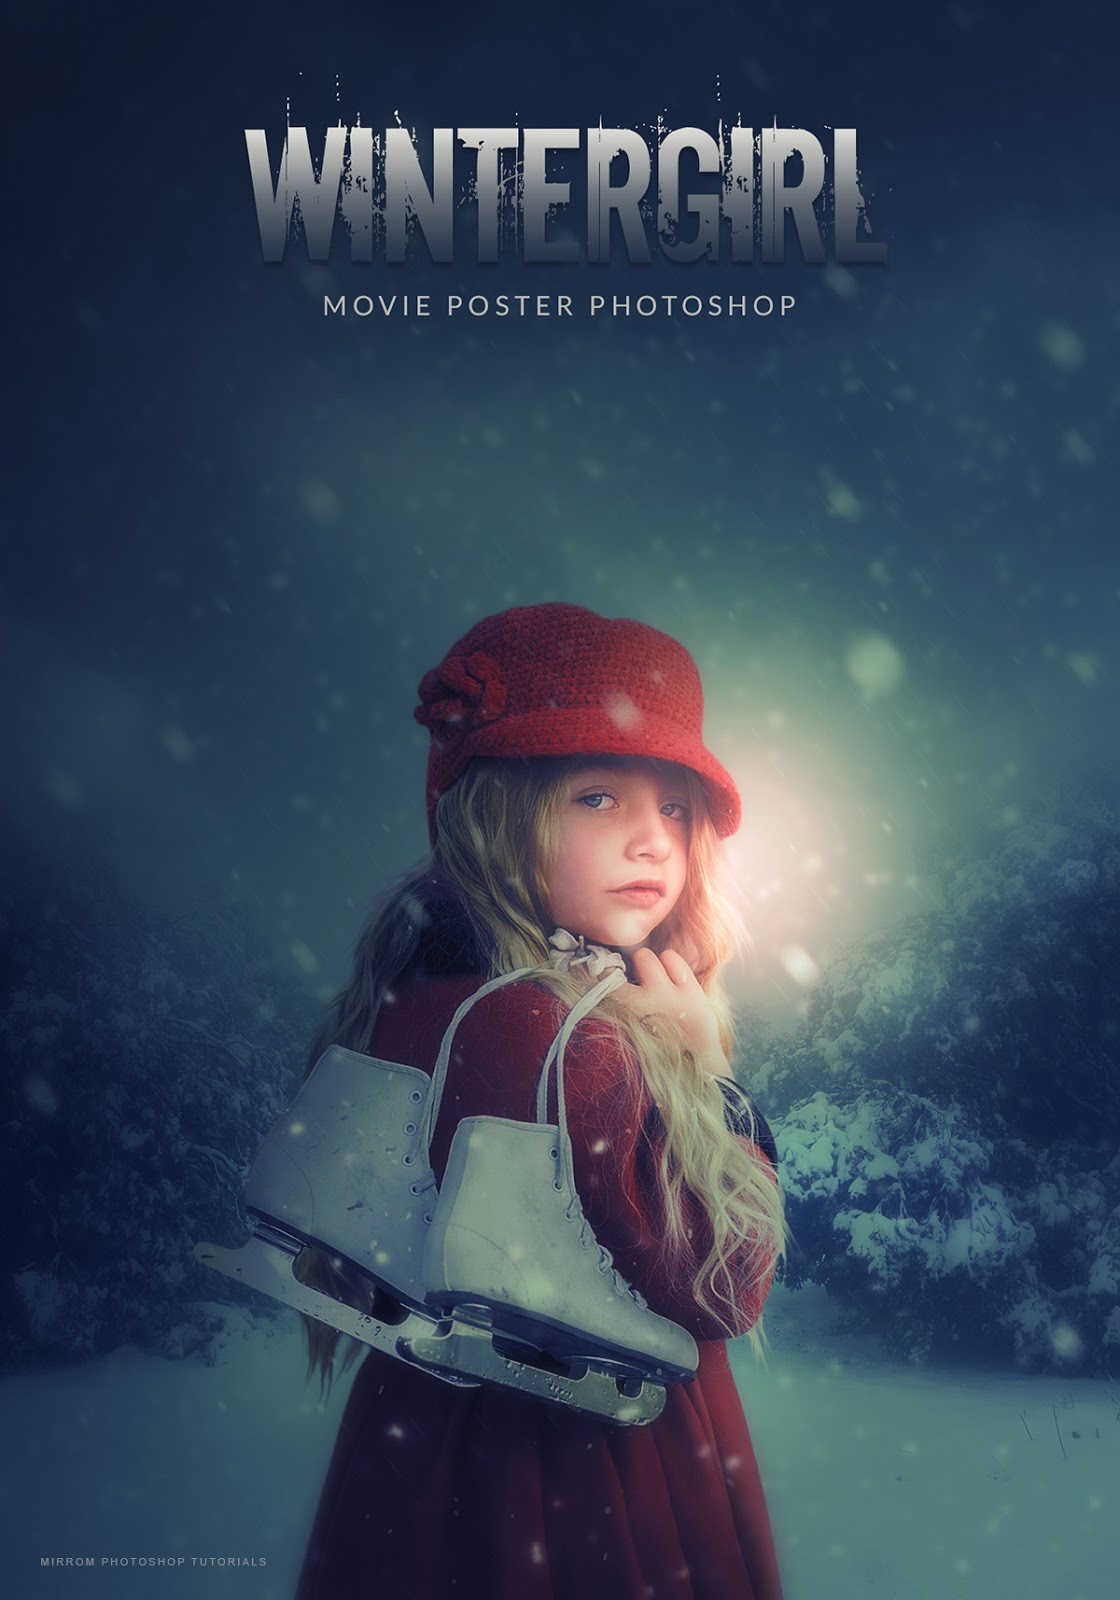 create a movie poster photo manipulation effects with